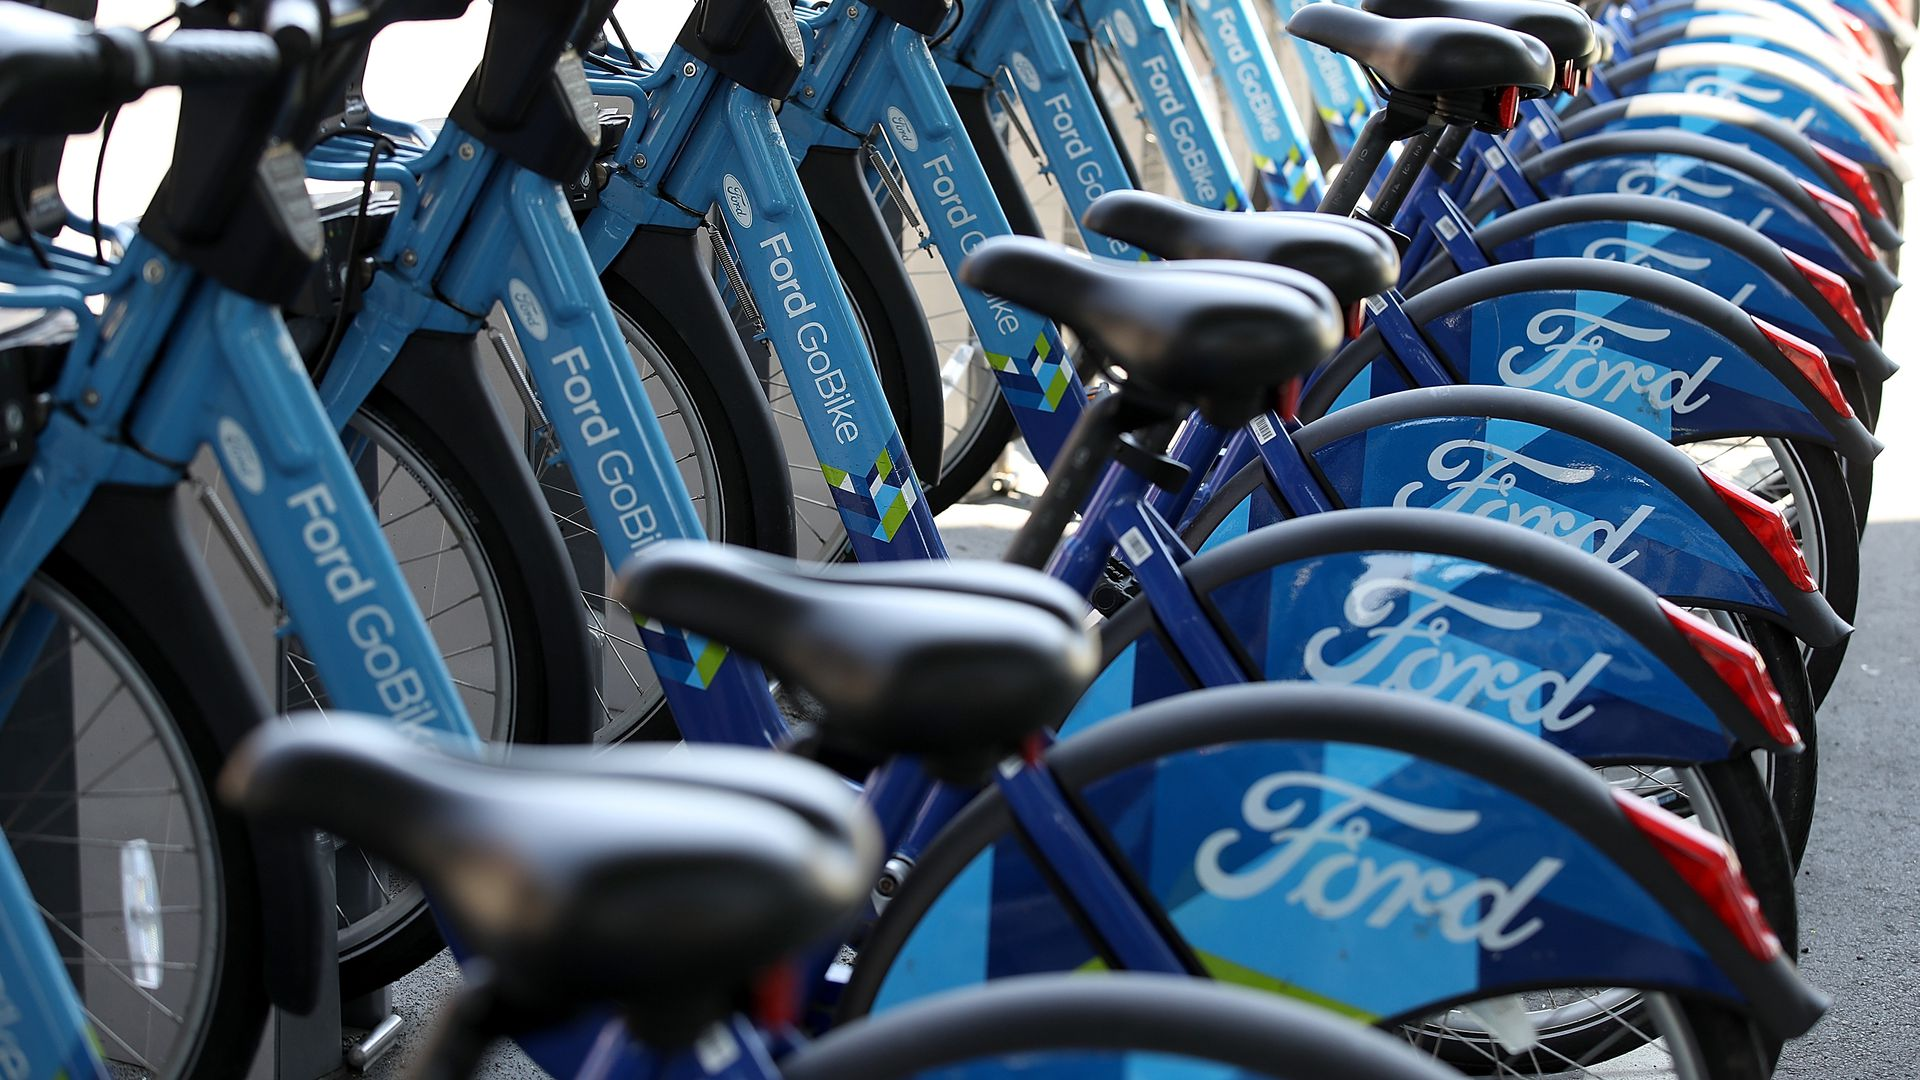 Ford Go Bikes lined up in San Francisco